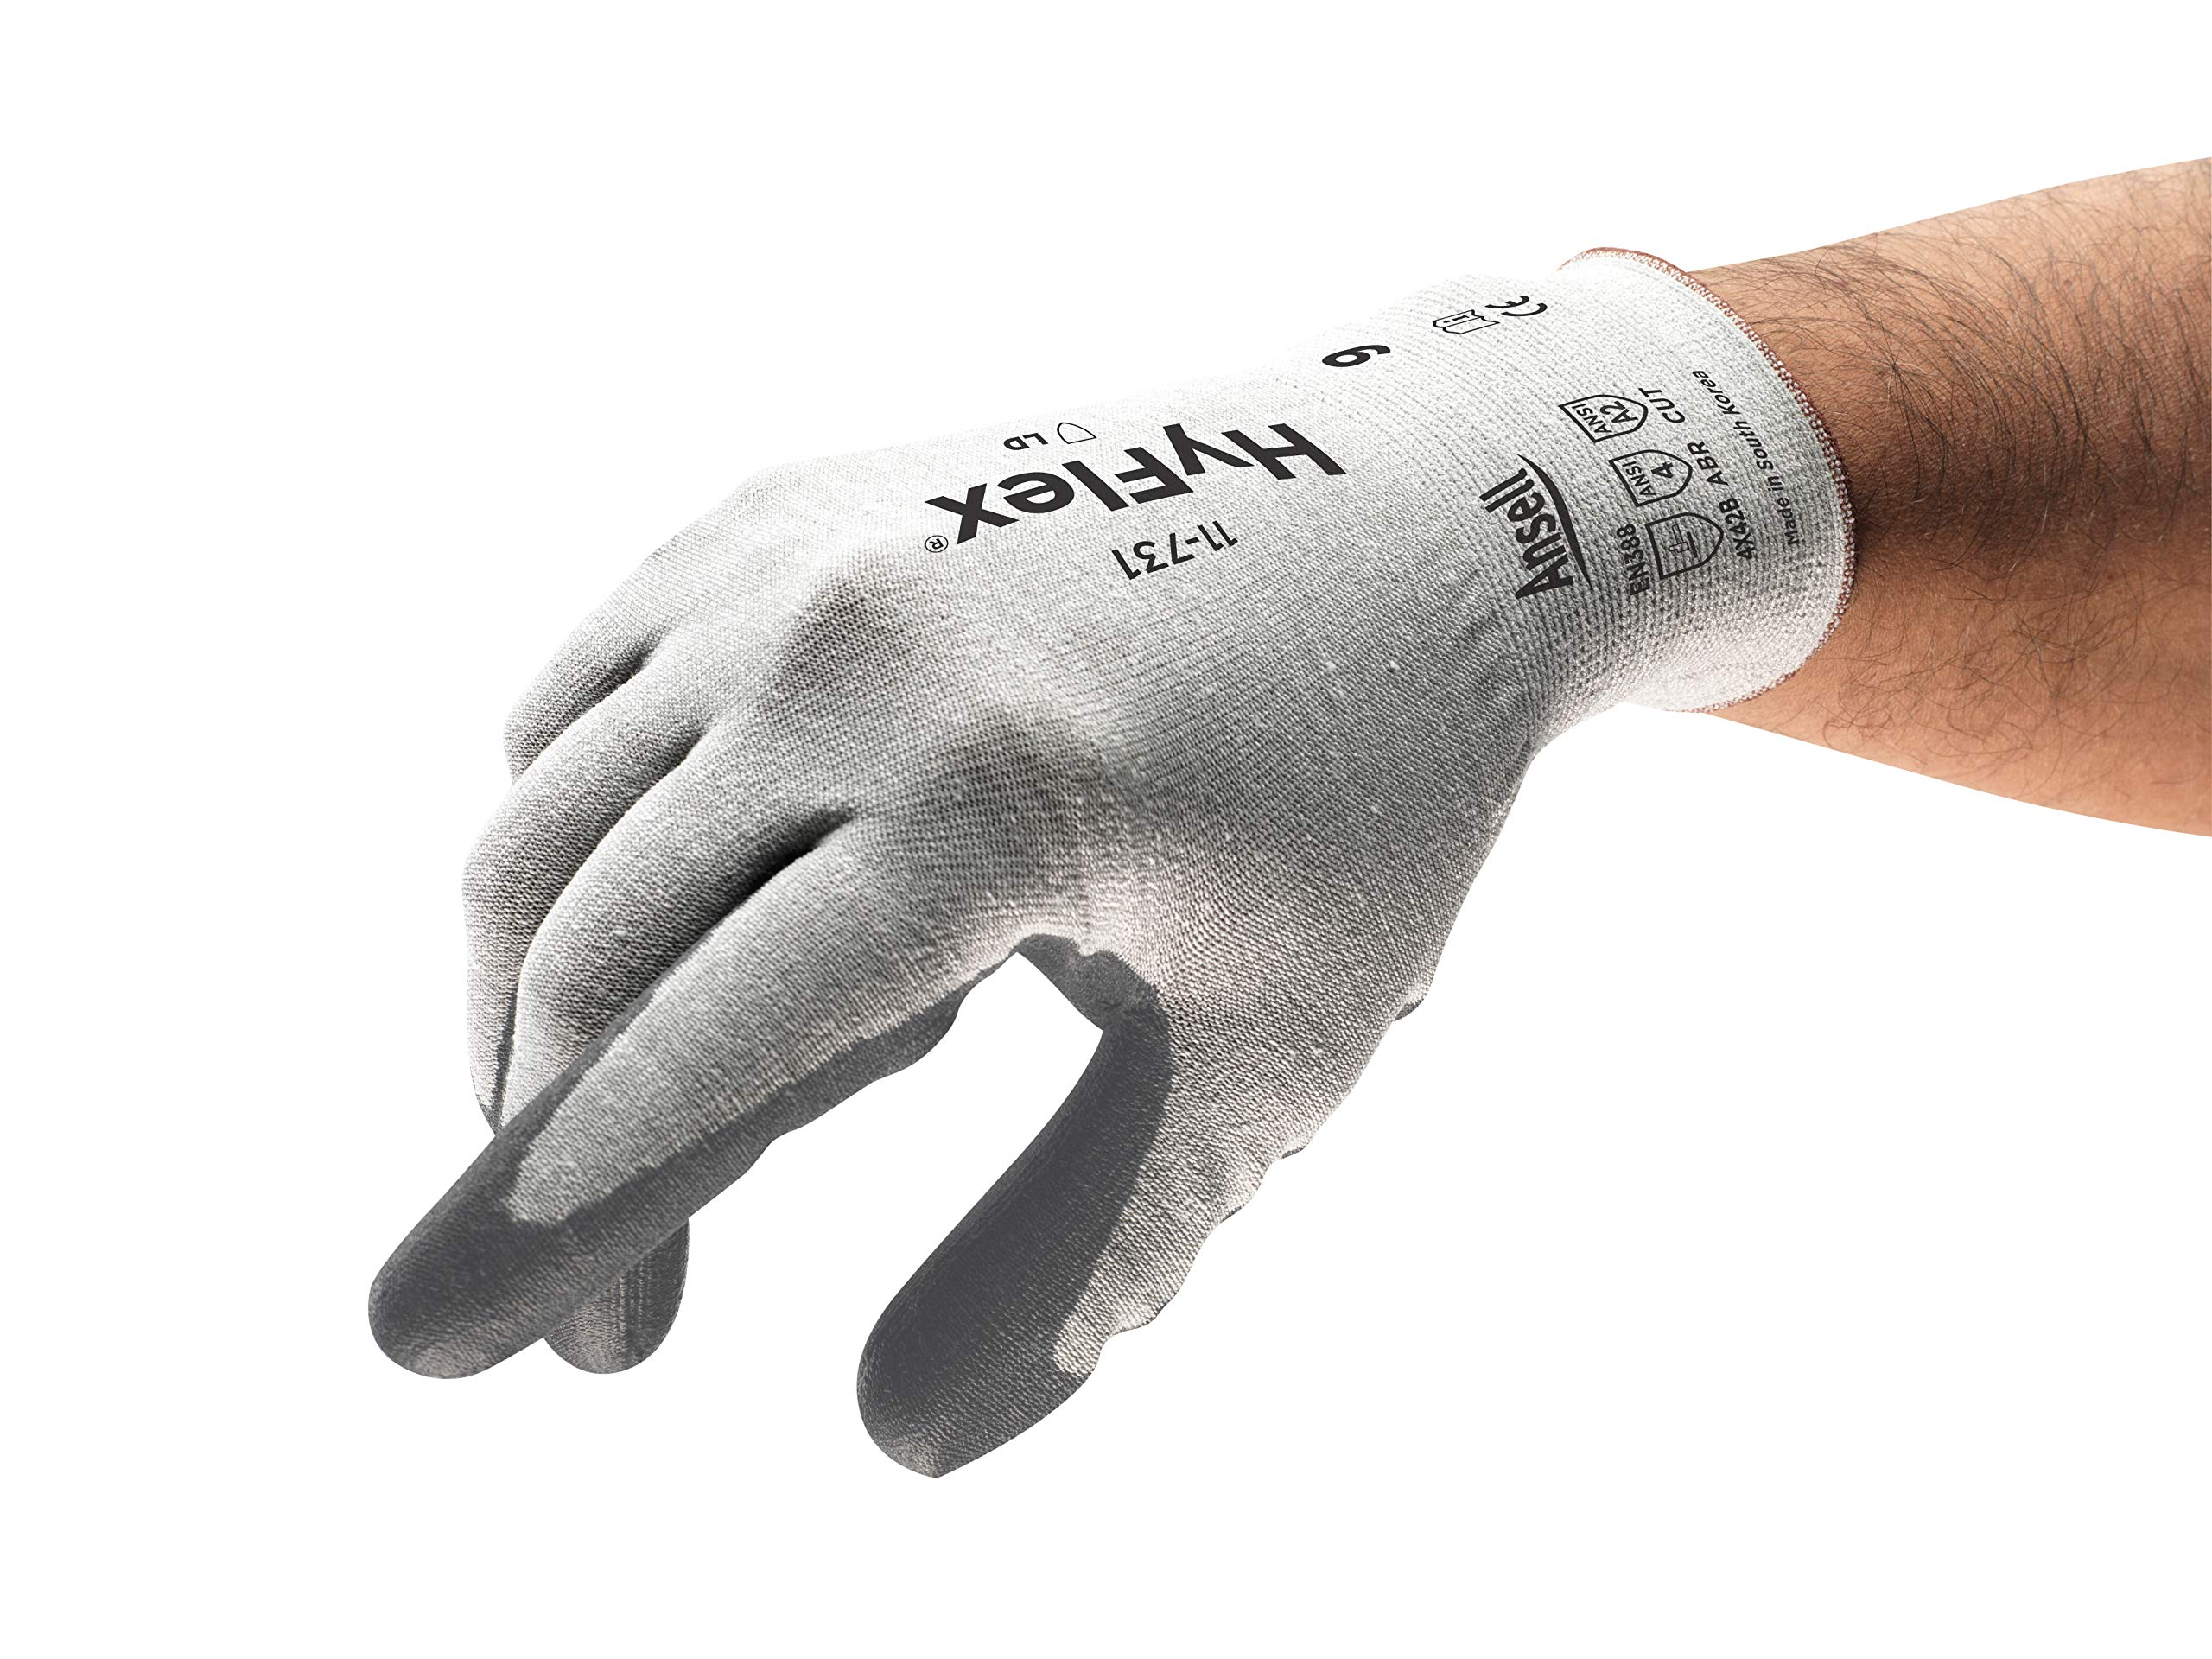 HyFlex 11-731 Light Duty Cut Resistant Gloves, Size 8 by Ansell (Image #1)